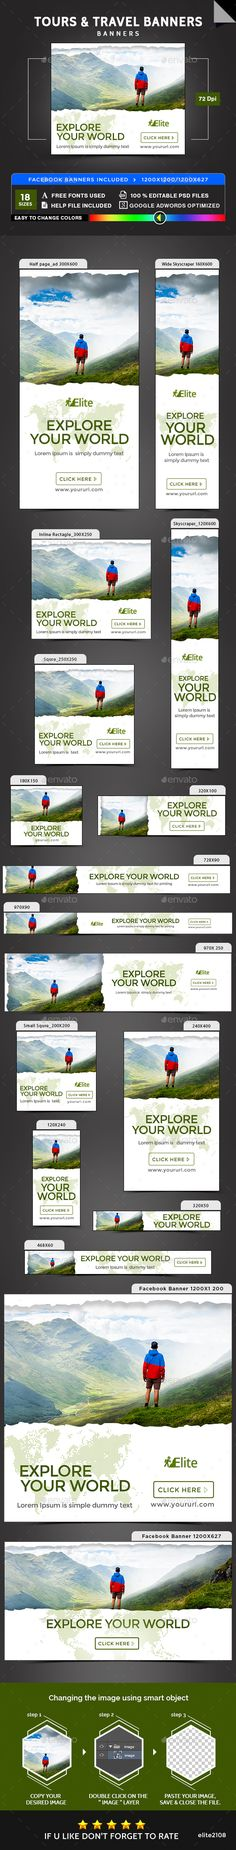 Tours & Travel Banners - Banners & Ads Web Elements Download here : https://graphicriver.net/item/tours-travel-banners/19349541?s_rank=142&ref=Al-fatih